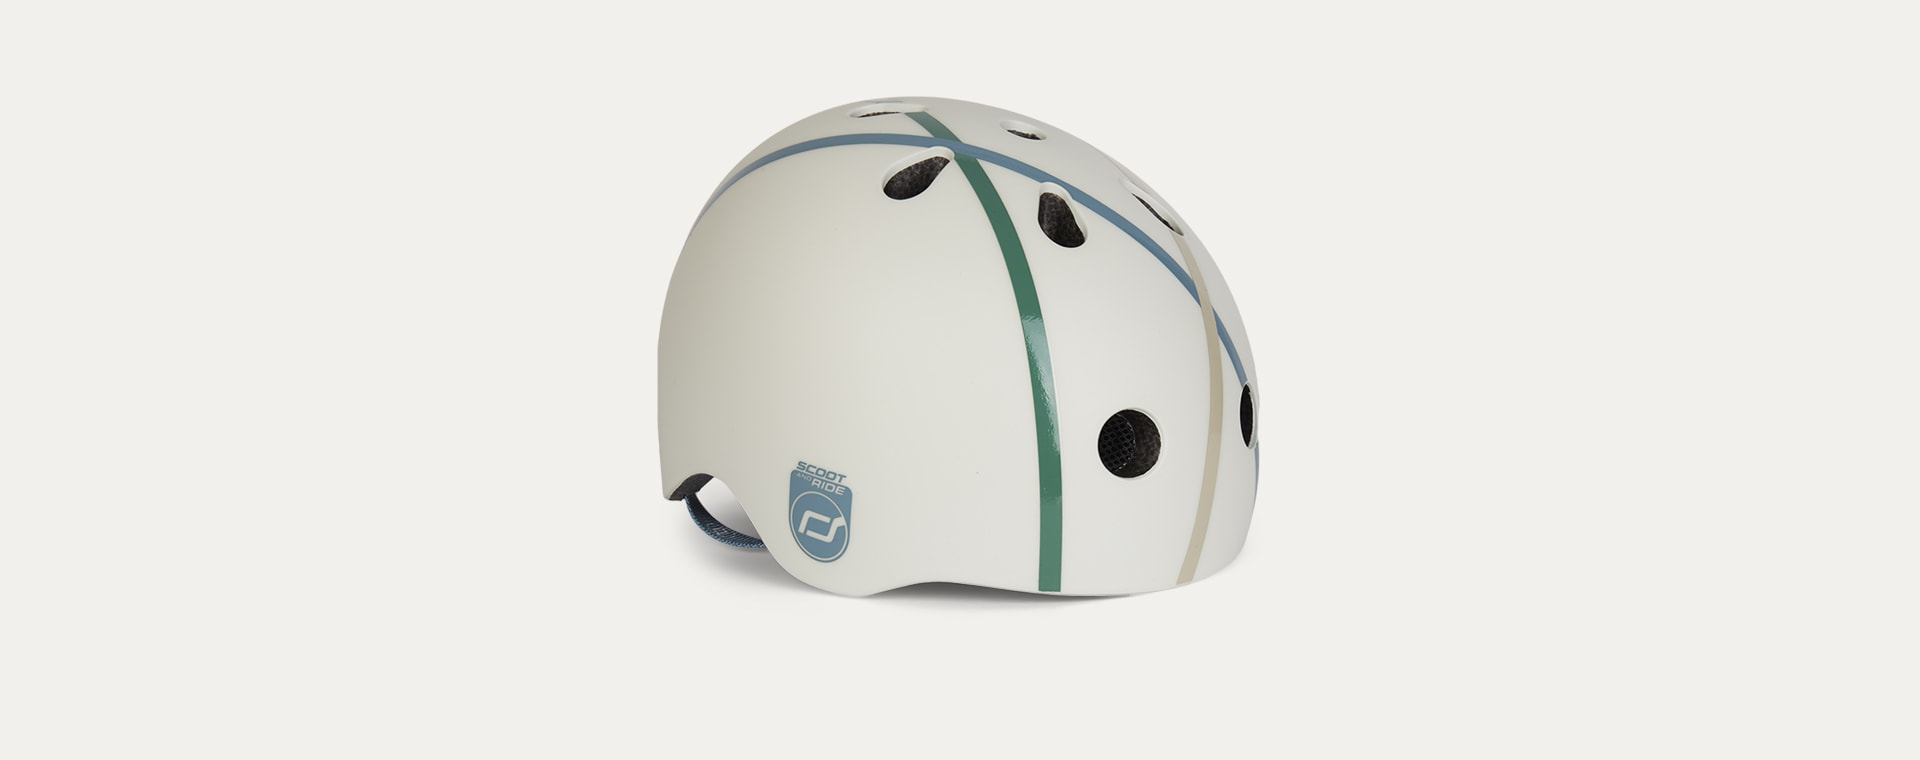 Cross Scoot & Ride Helmet